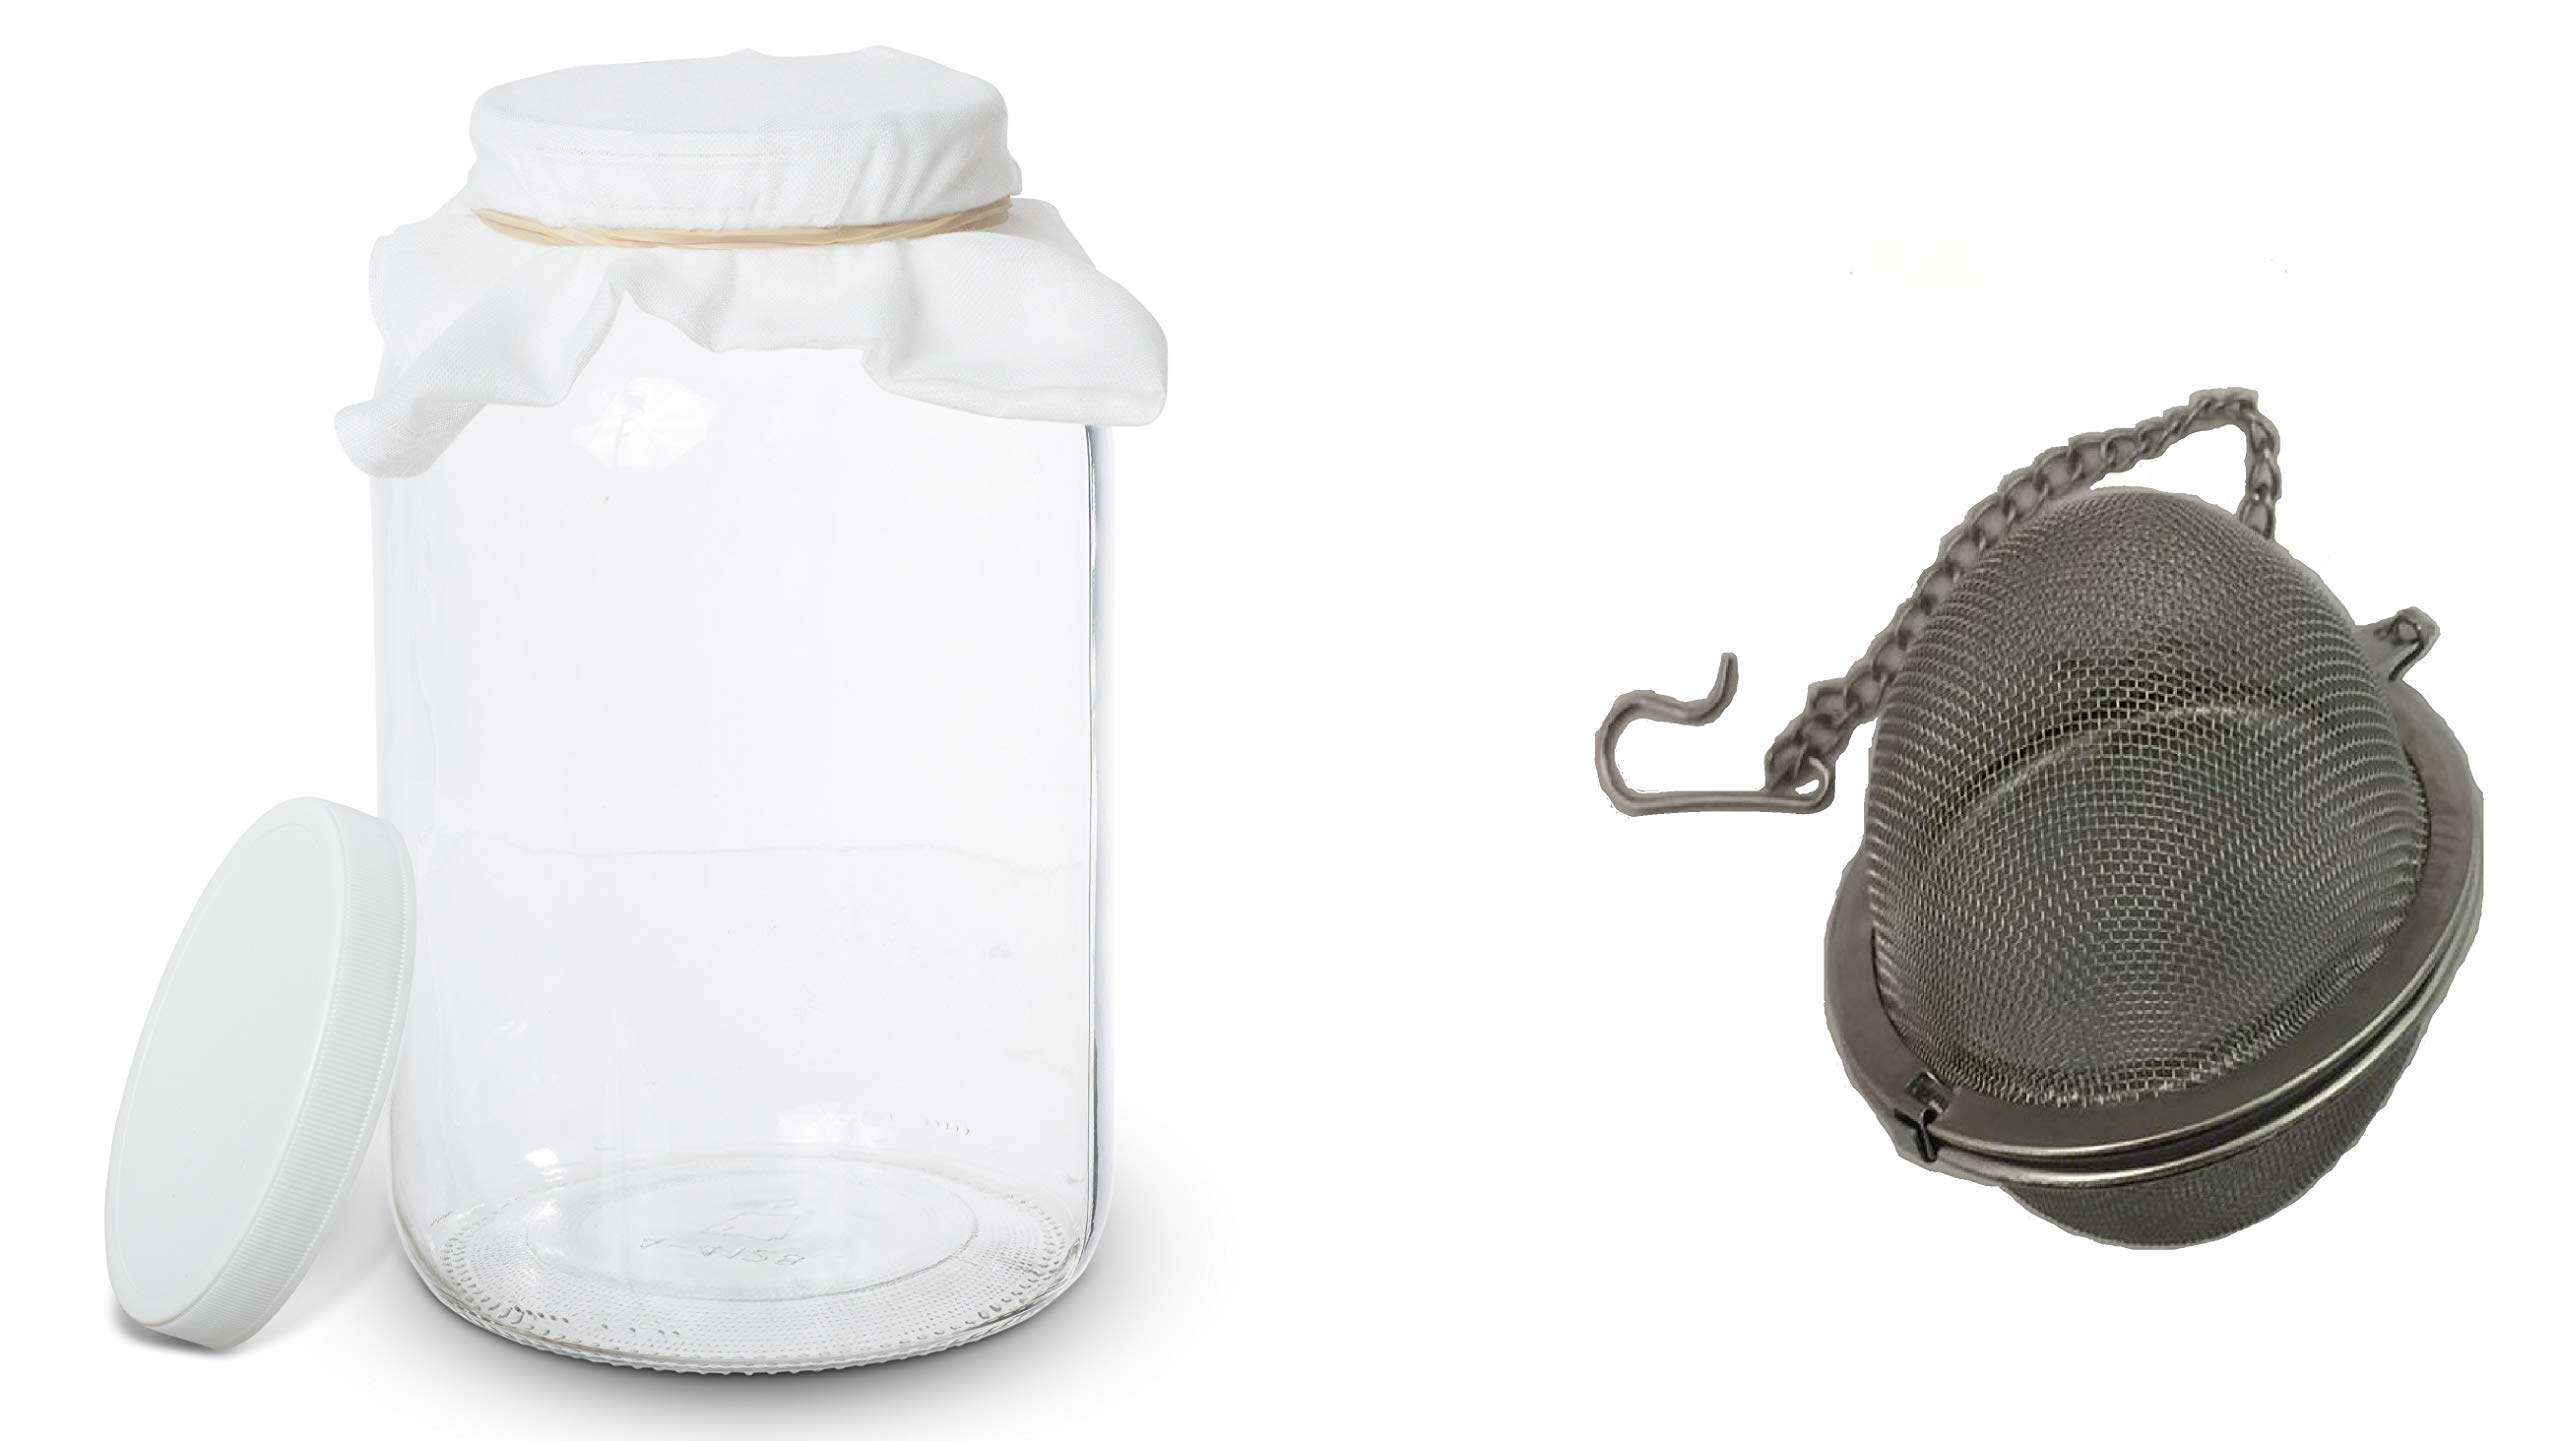 1 Gallon Glass Kombucha Jar with Stainless Steel Tea Infuser - Home Brewing and Fermenting Kit with Cheesecloth Filter, Rubber Band and Plastic Lid - By Kitchentoolz